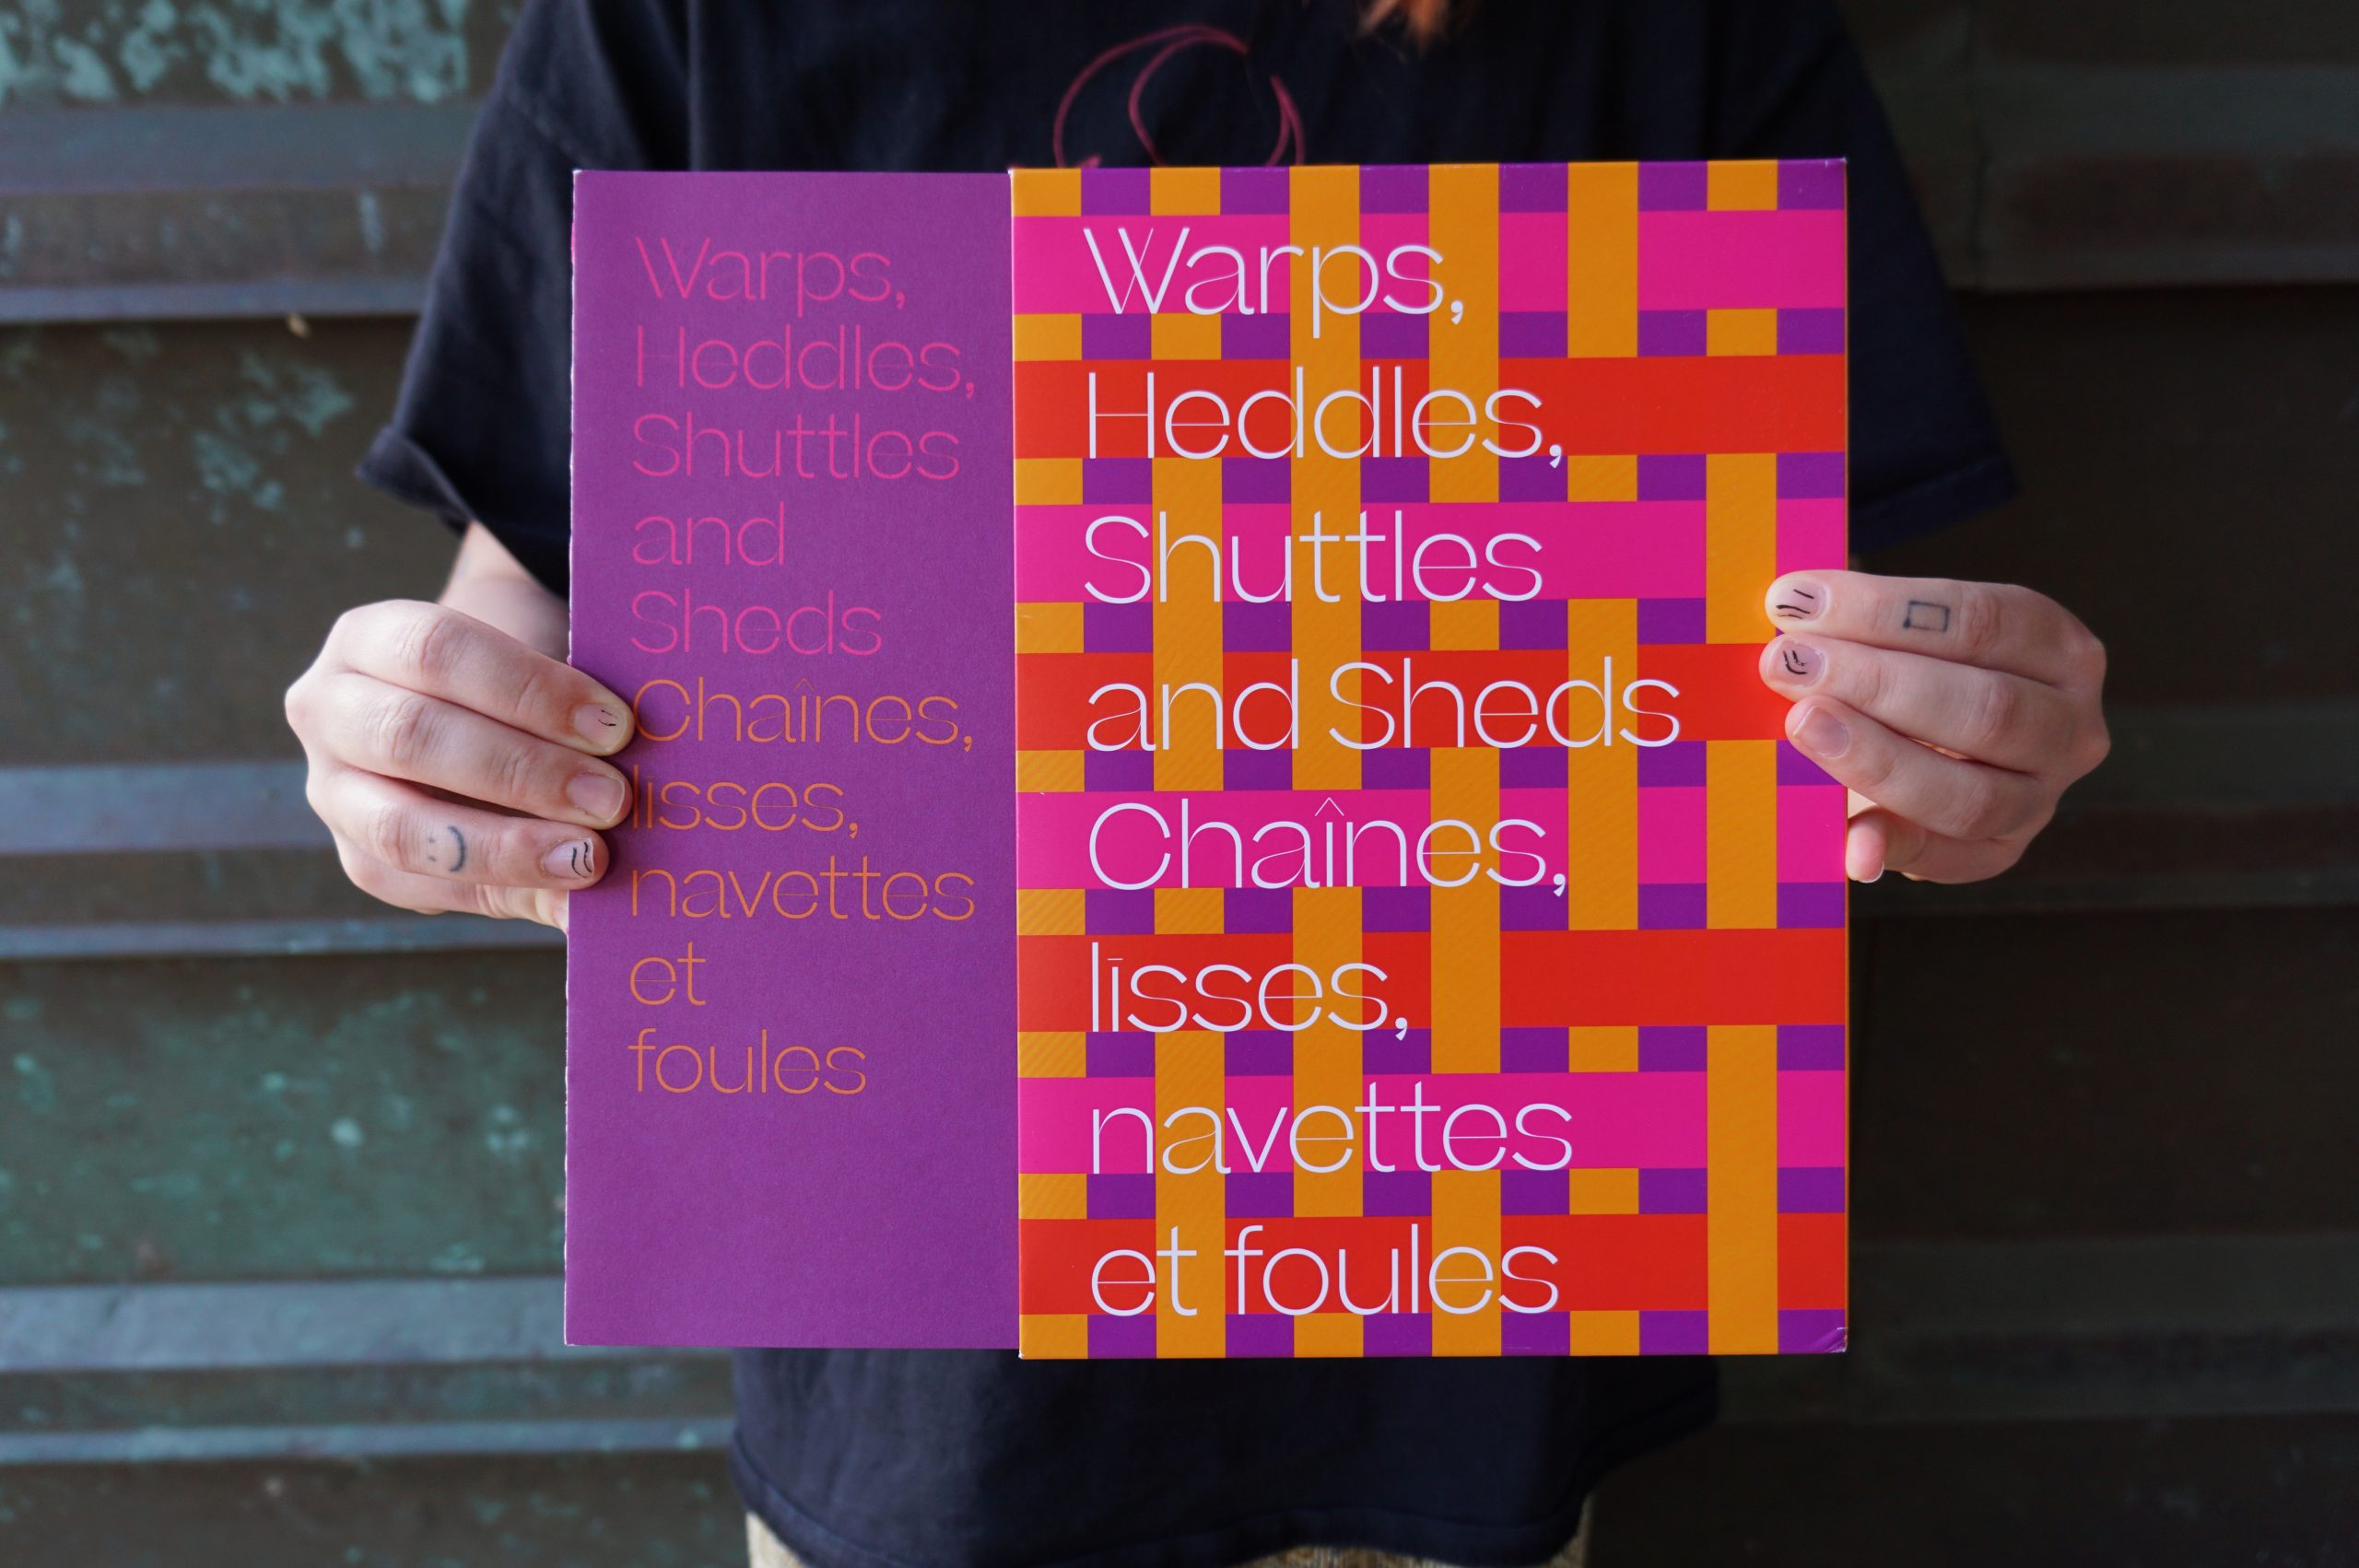 """A pair of hands removes a publication with a purple cover with the words """"Warps, Heddles, Shuttles and Sheds"""" in pink and """"Chaîne, Līsses, navettes et foules"""" in orange, from a slip case. In white text """"Warps, Heddles, Shuttles and Sheds Chaîne, Līsses, navettes et foules"""" sits atop woven bands of vibrant orange, pink and red against a purple background on the slipcase."""